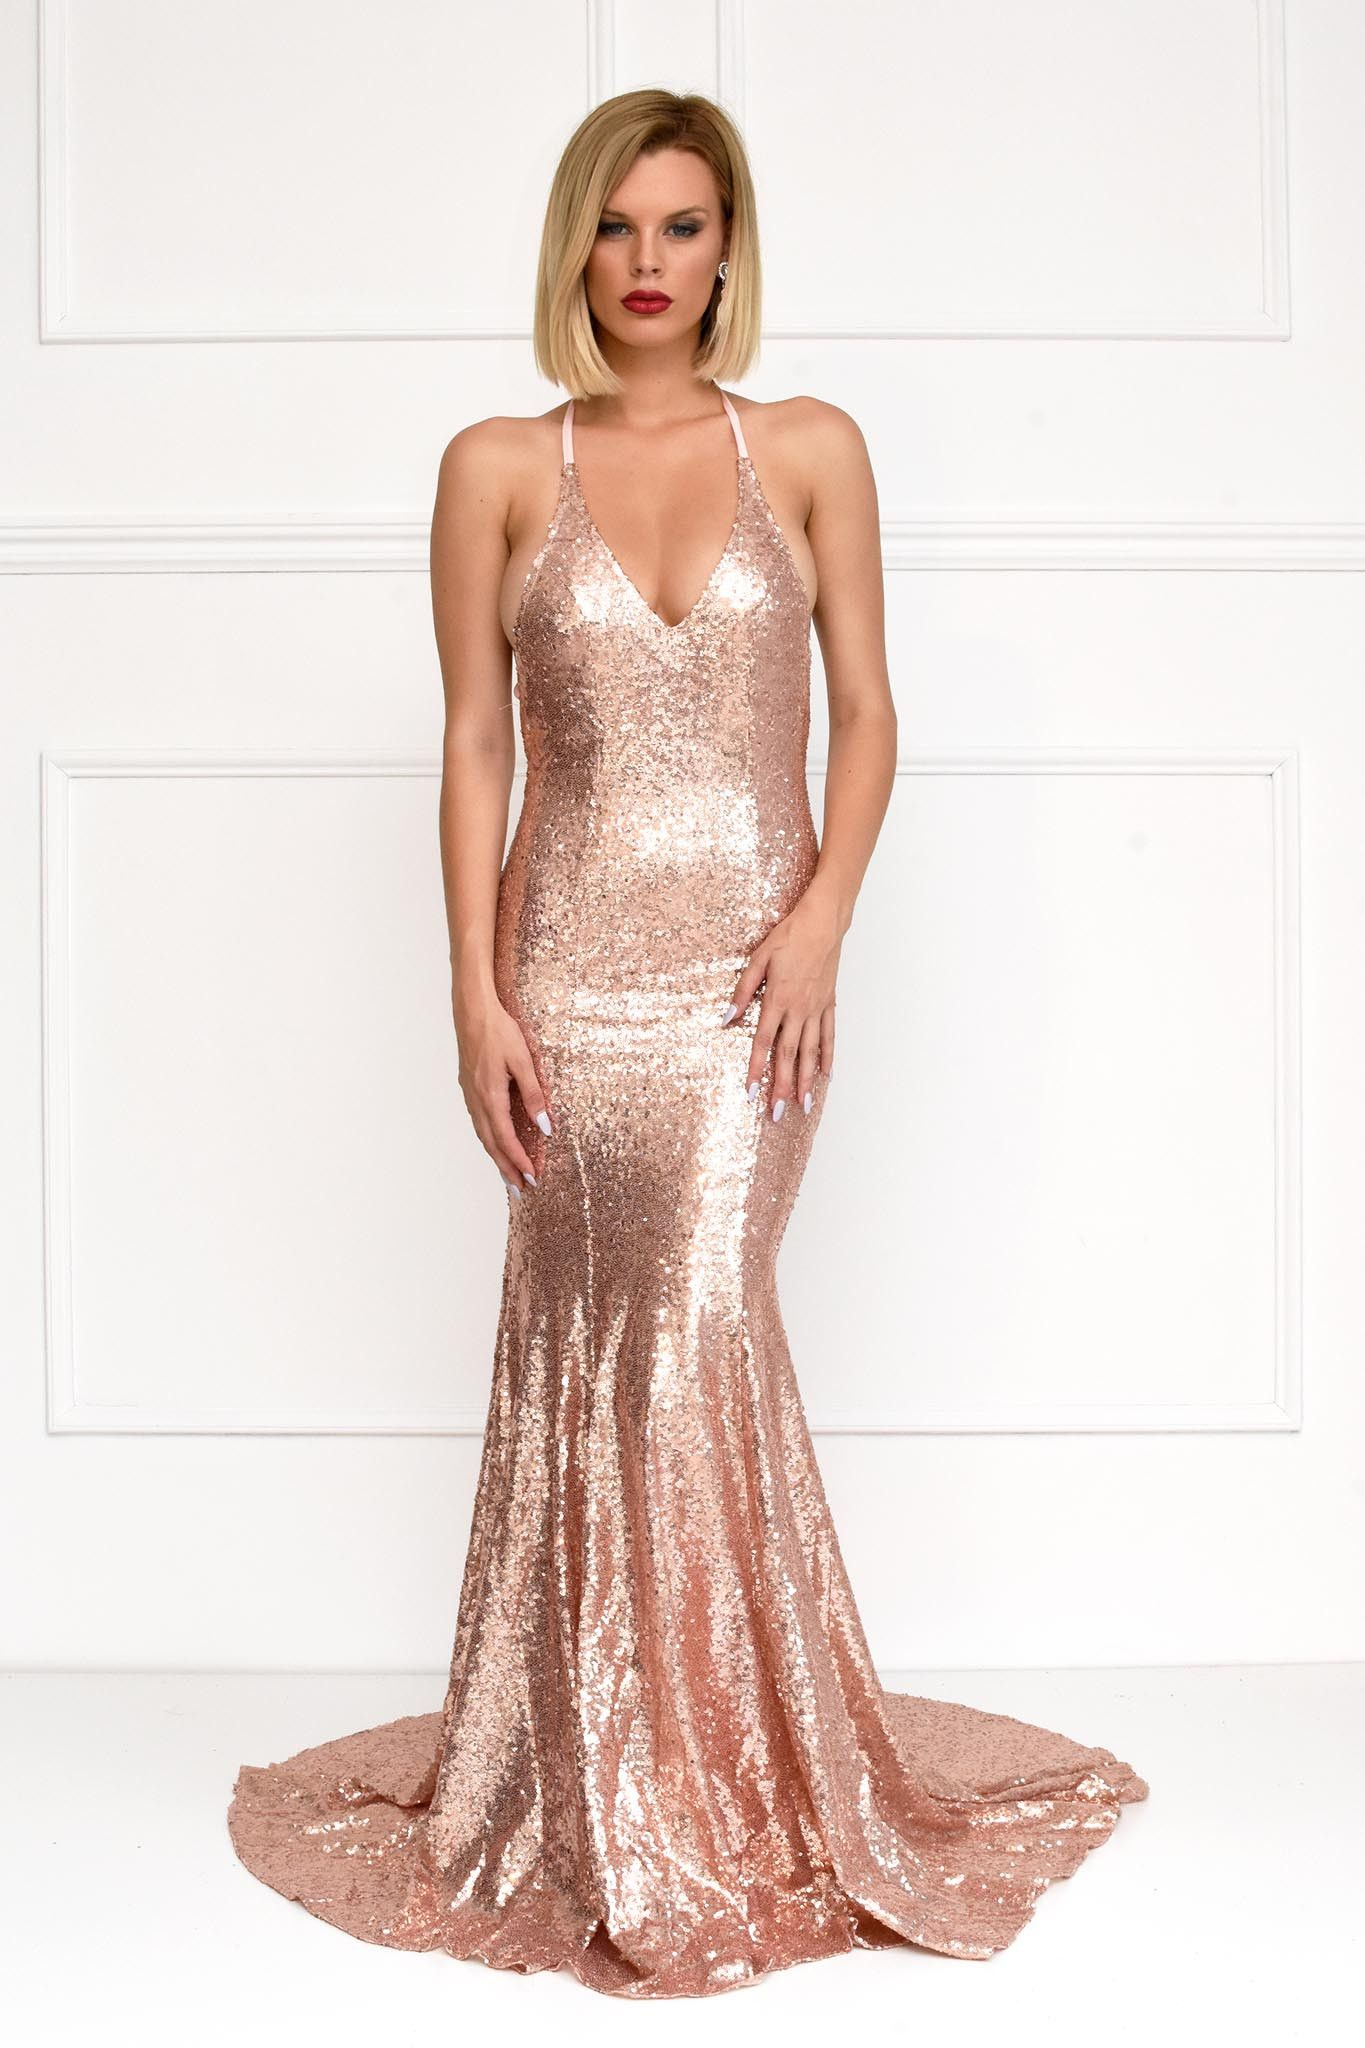 8814476e Front of rose gold sequin formal floor-length evening gown lowcut deep v  neck spaghetti straps